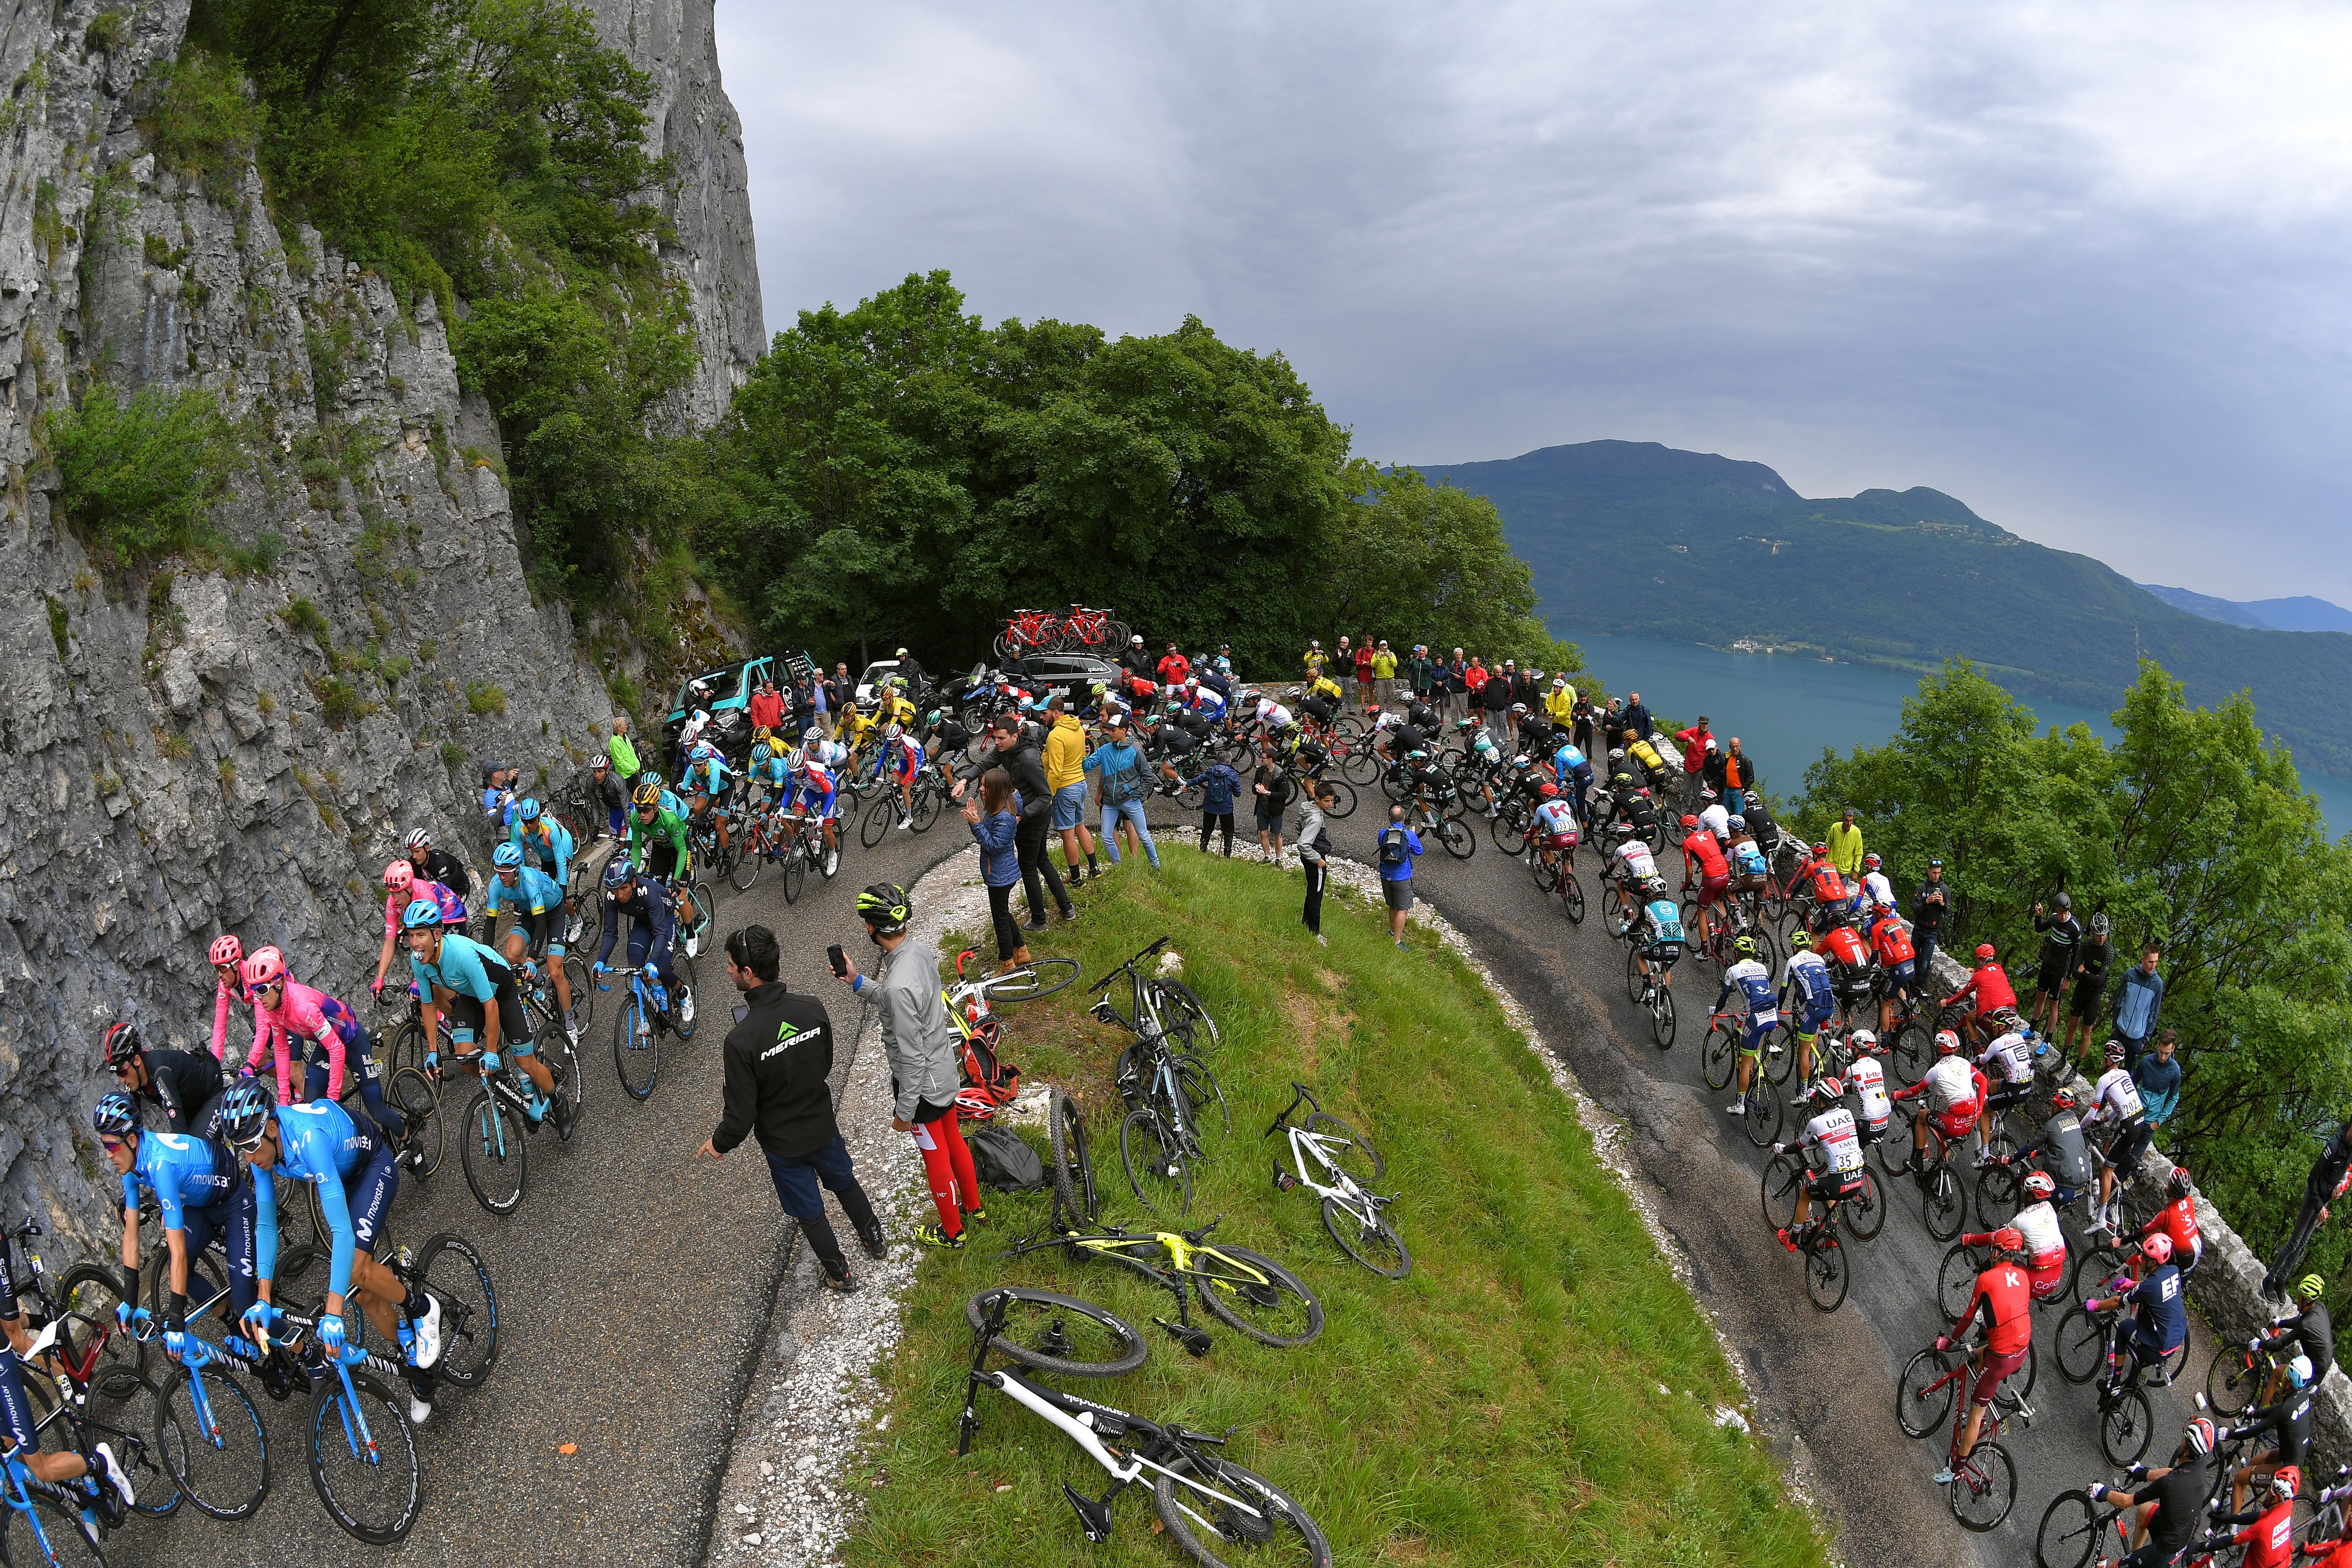 Riders biking up a hill